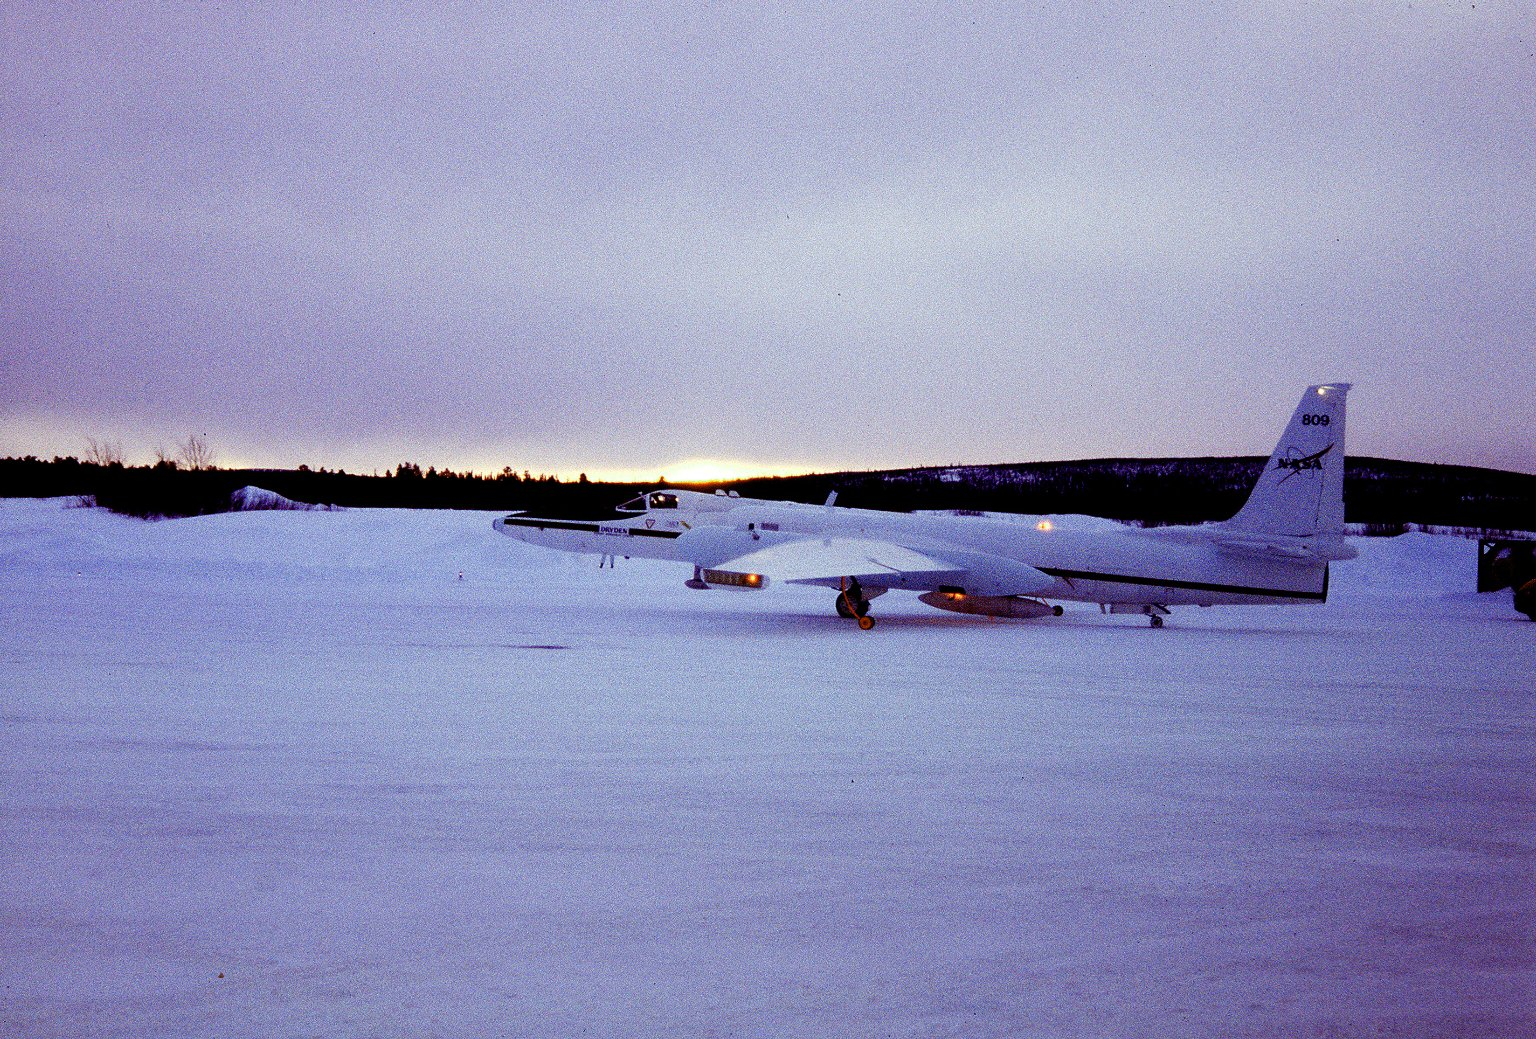 ER-2 USED IN ARCTIC OZONE RESEARCH